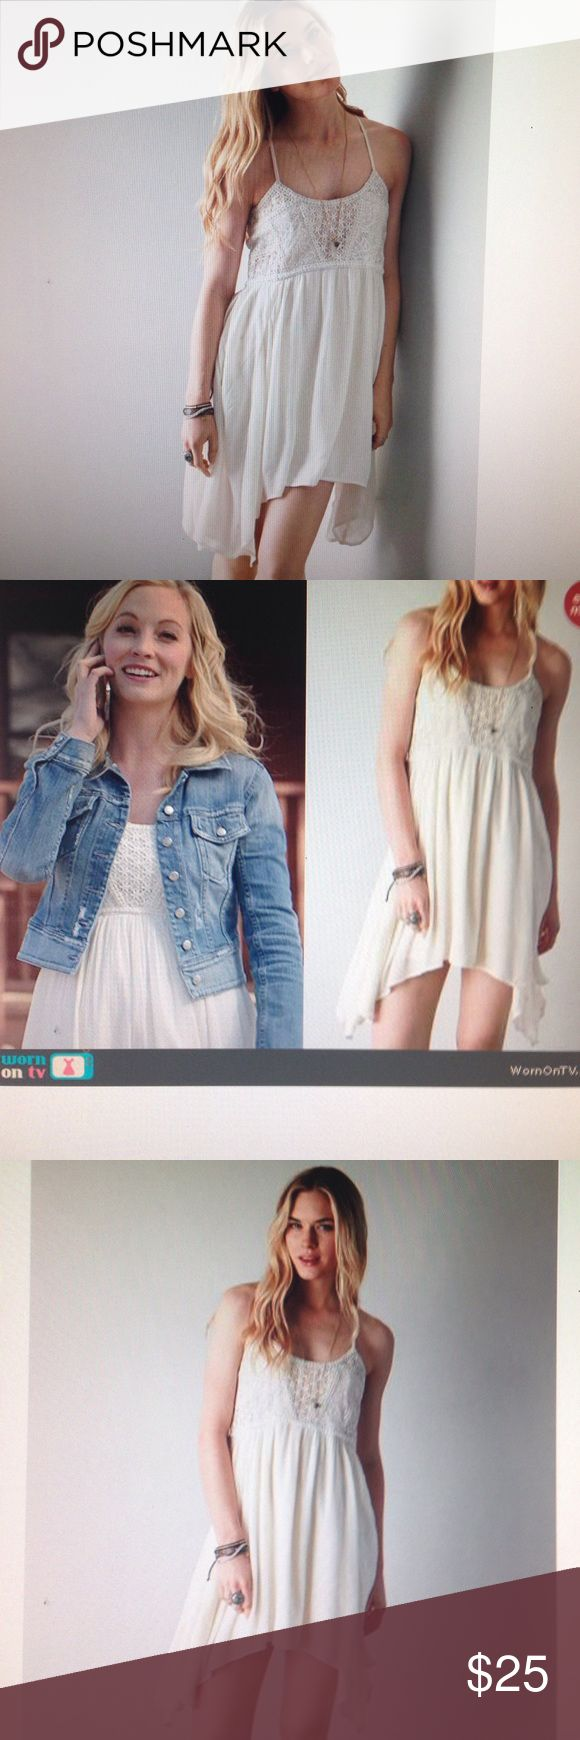 """AEO baby doll dress, worn once looks new, size 4 Practically new AEO baby doll dress in size 4: wore only for couple hours for photo shoot. Measurements chest=34"""", length =28"""". American Eagle Outfitters Dresses"""